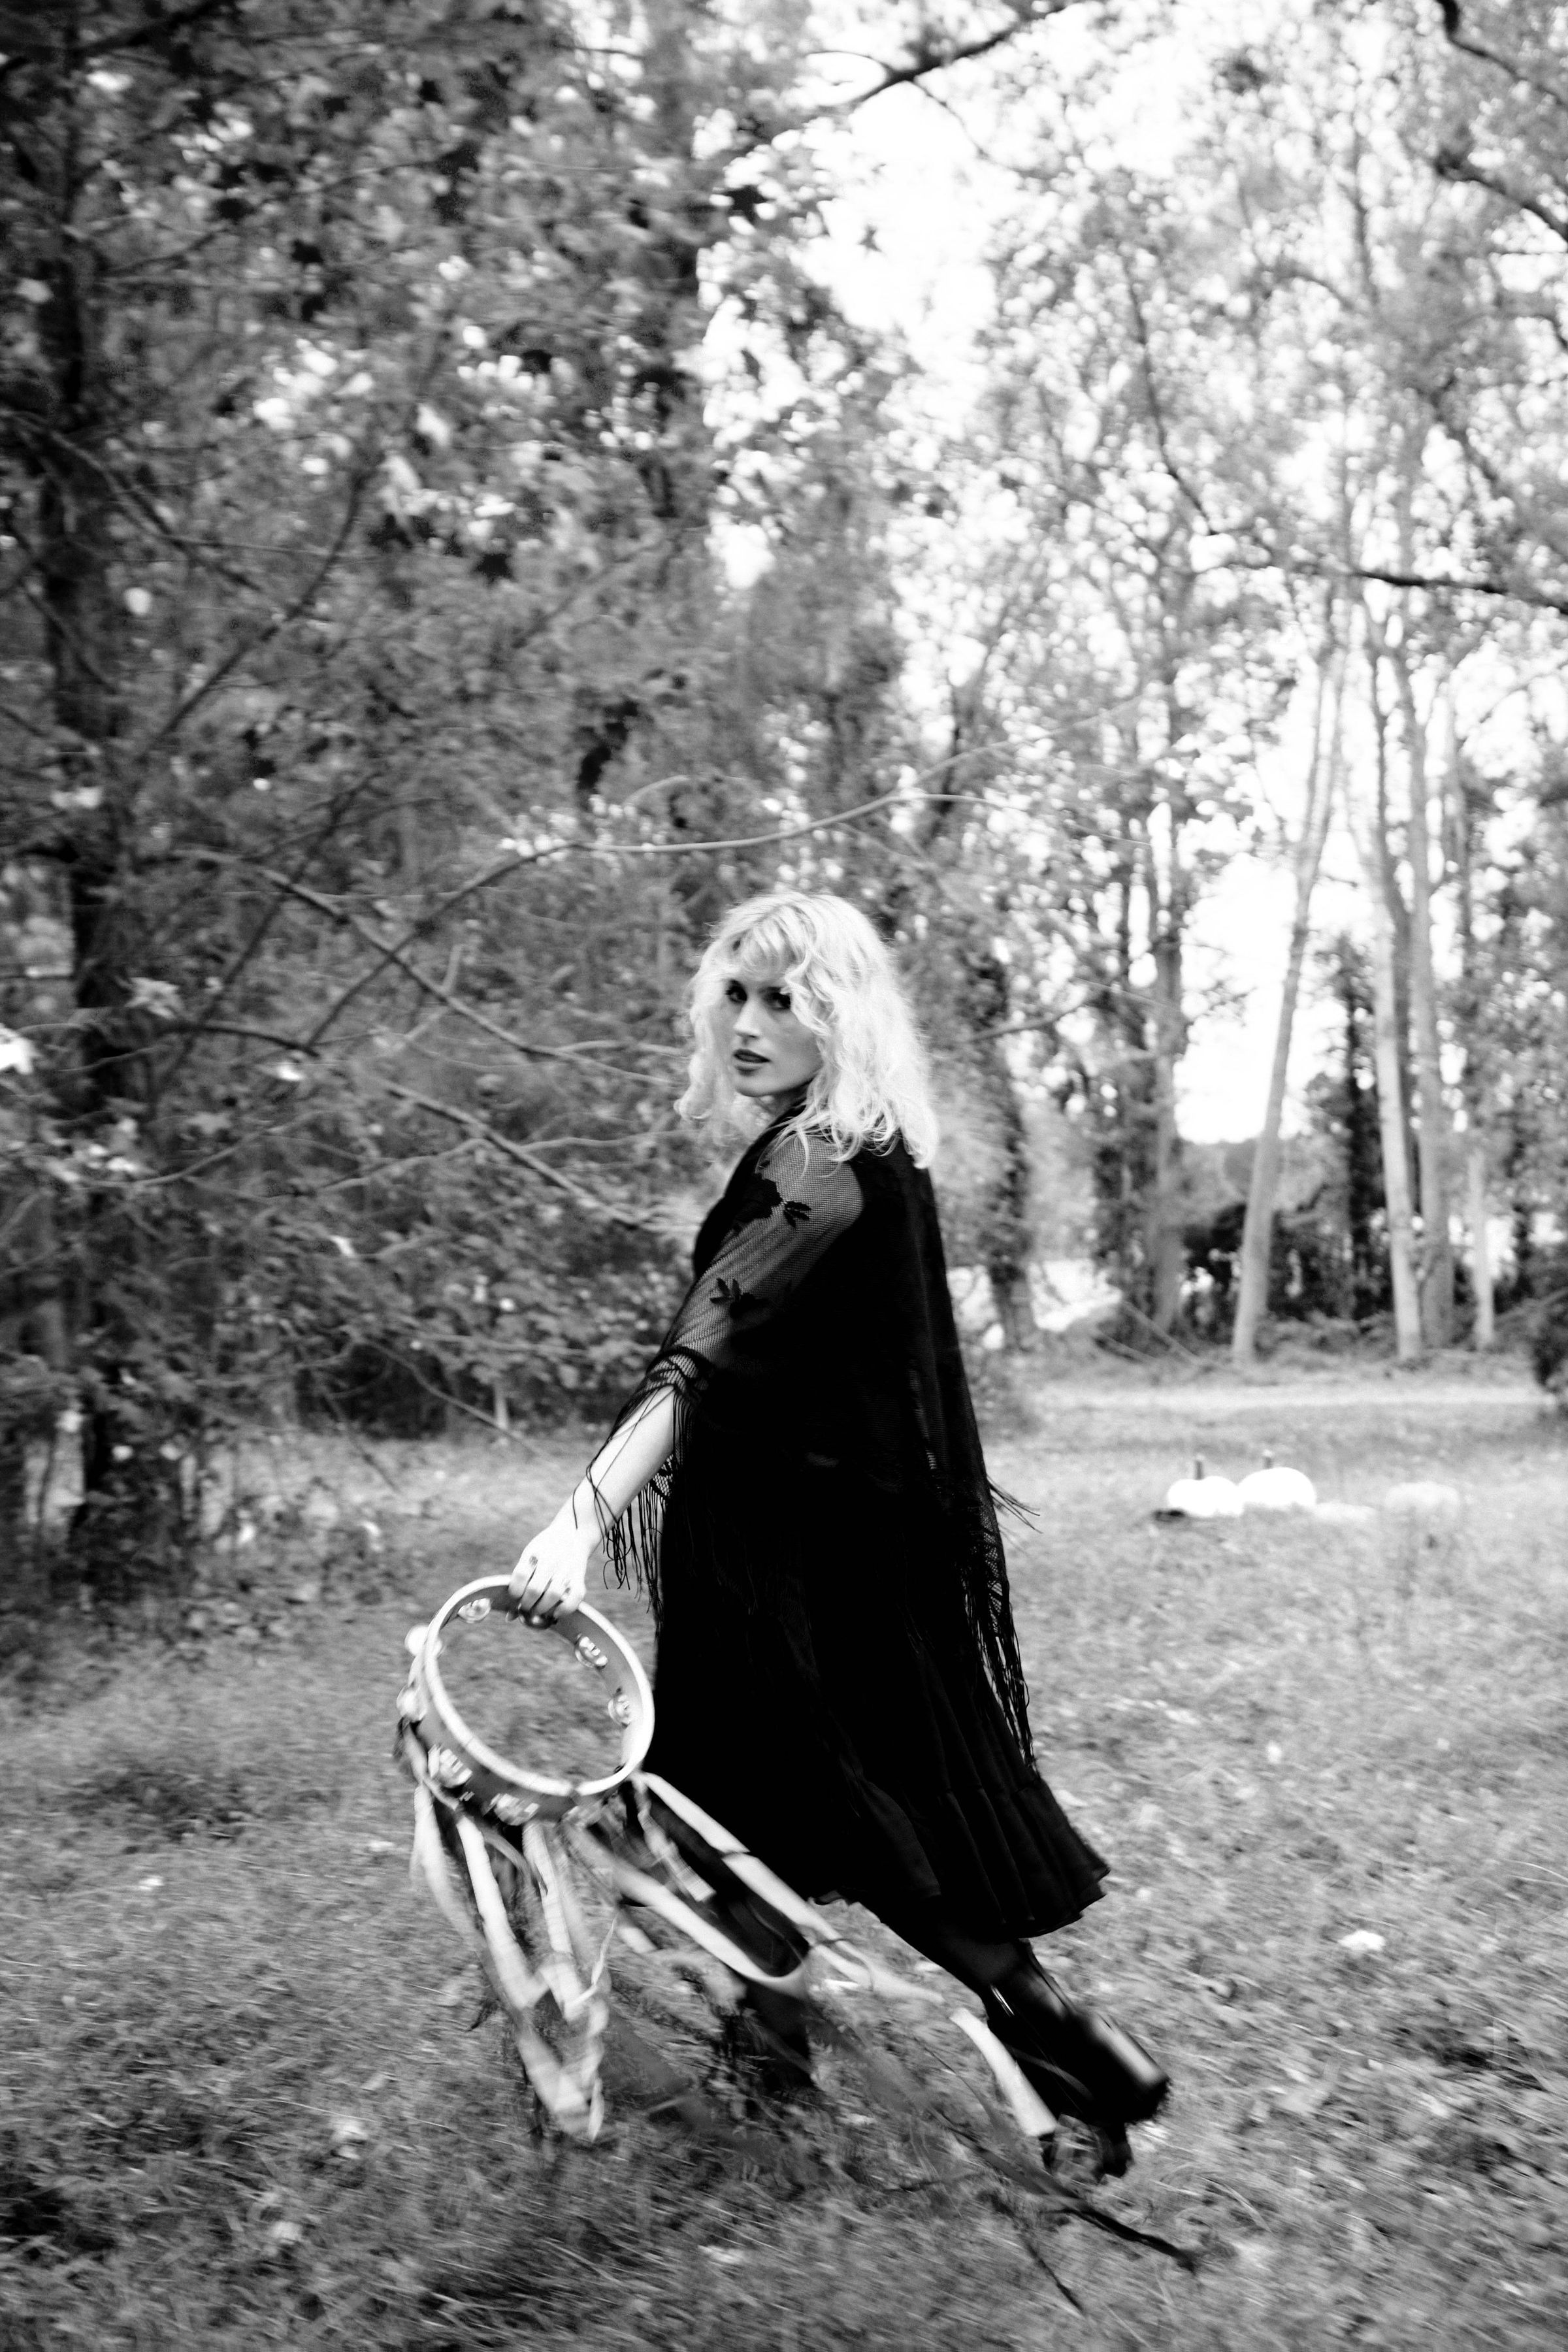 Feeling Witchy How To Dress Up As The White Witch Herself Stevie Nicks Halloween Stevienicks Stevienicksco Stevie Nicks Costume Stevie Stevie Nicks [ 3600 x 2400 Pixel ]